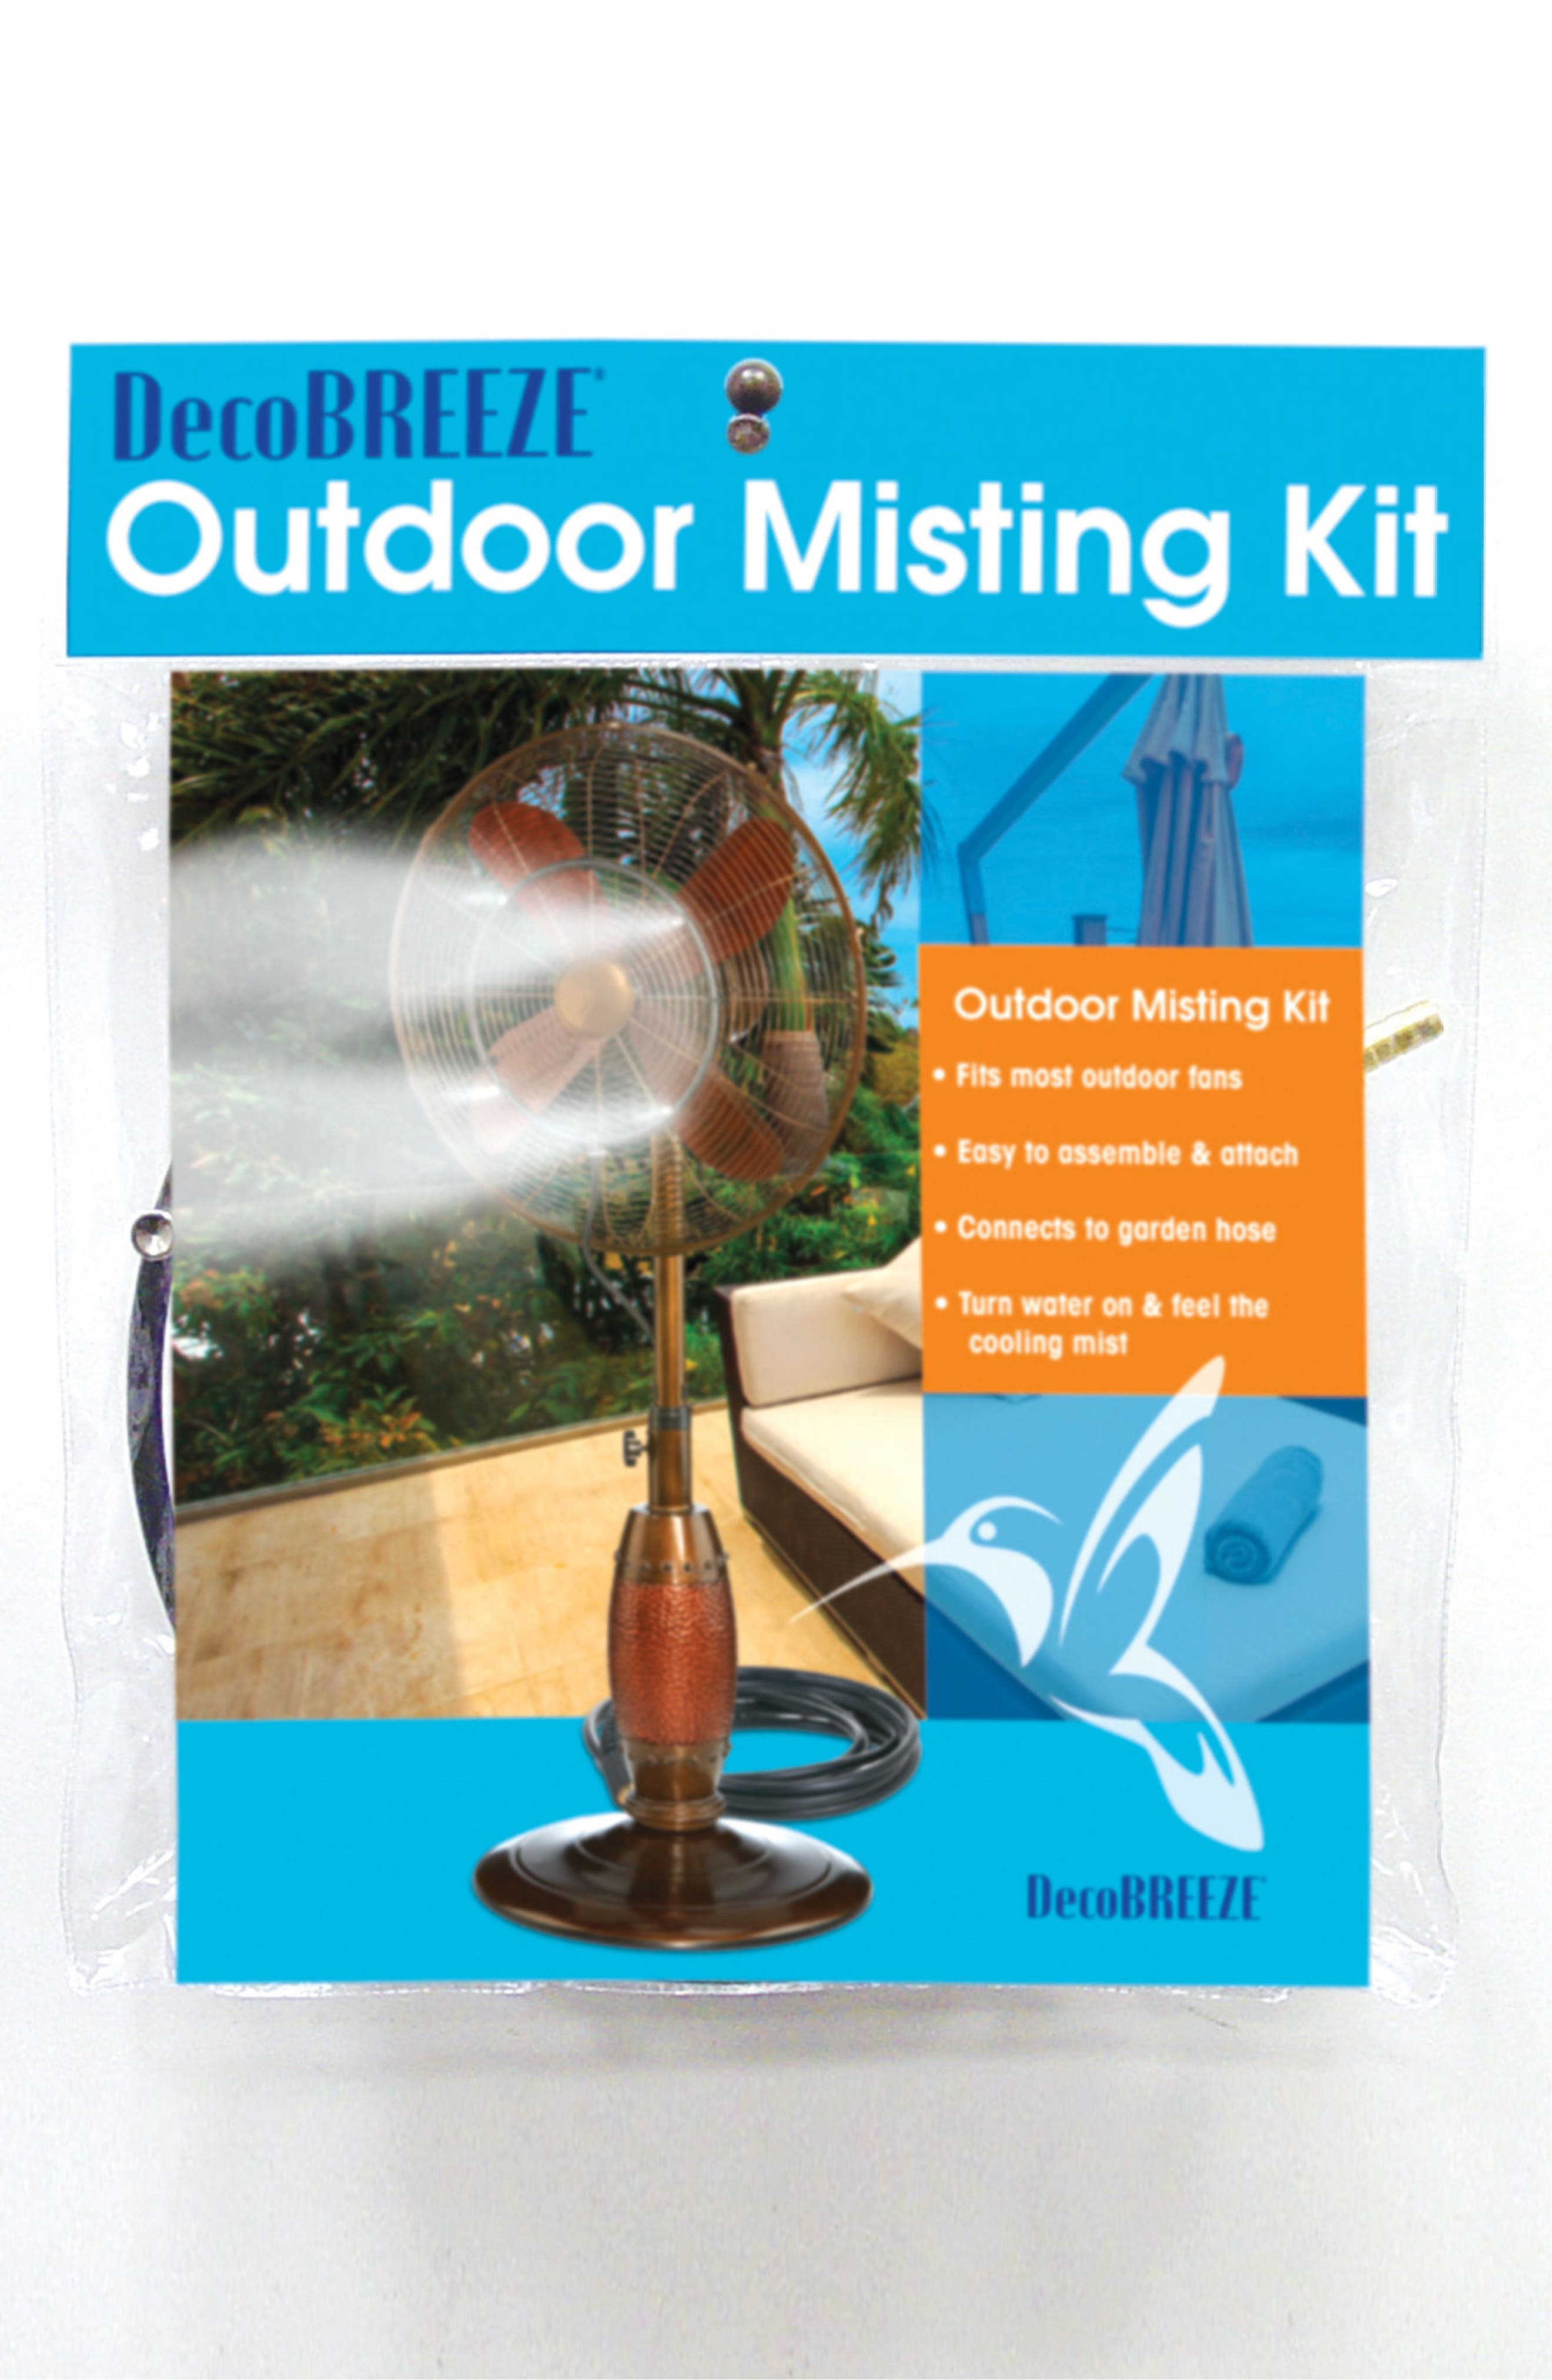 Alternate Image 1 Selected - DecoBREEZE Outdoor Misting Kit Fan Attachment